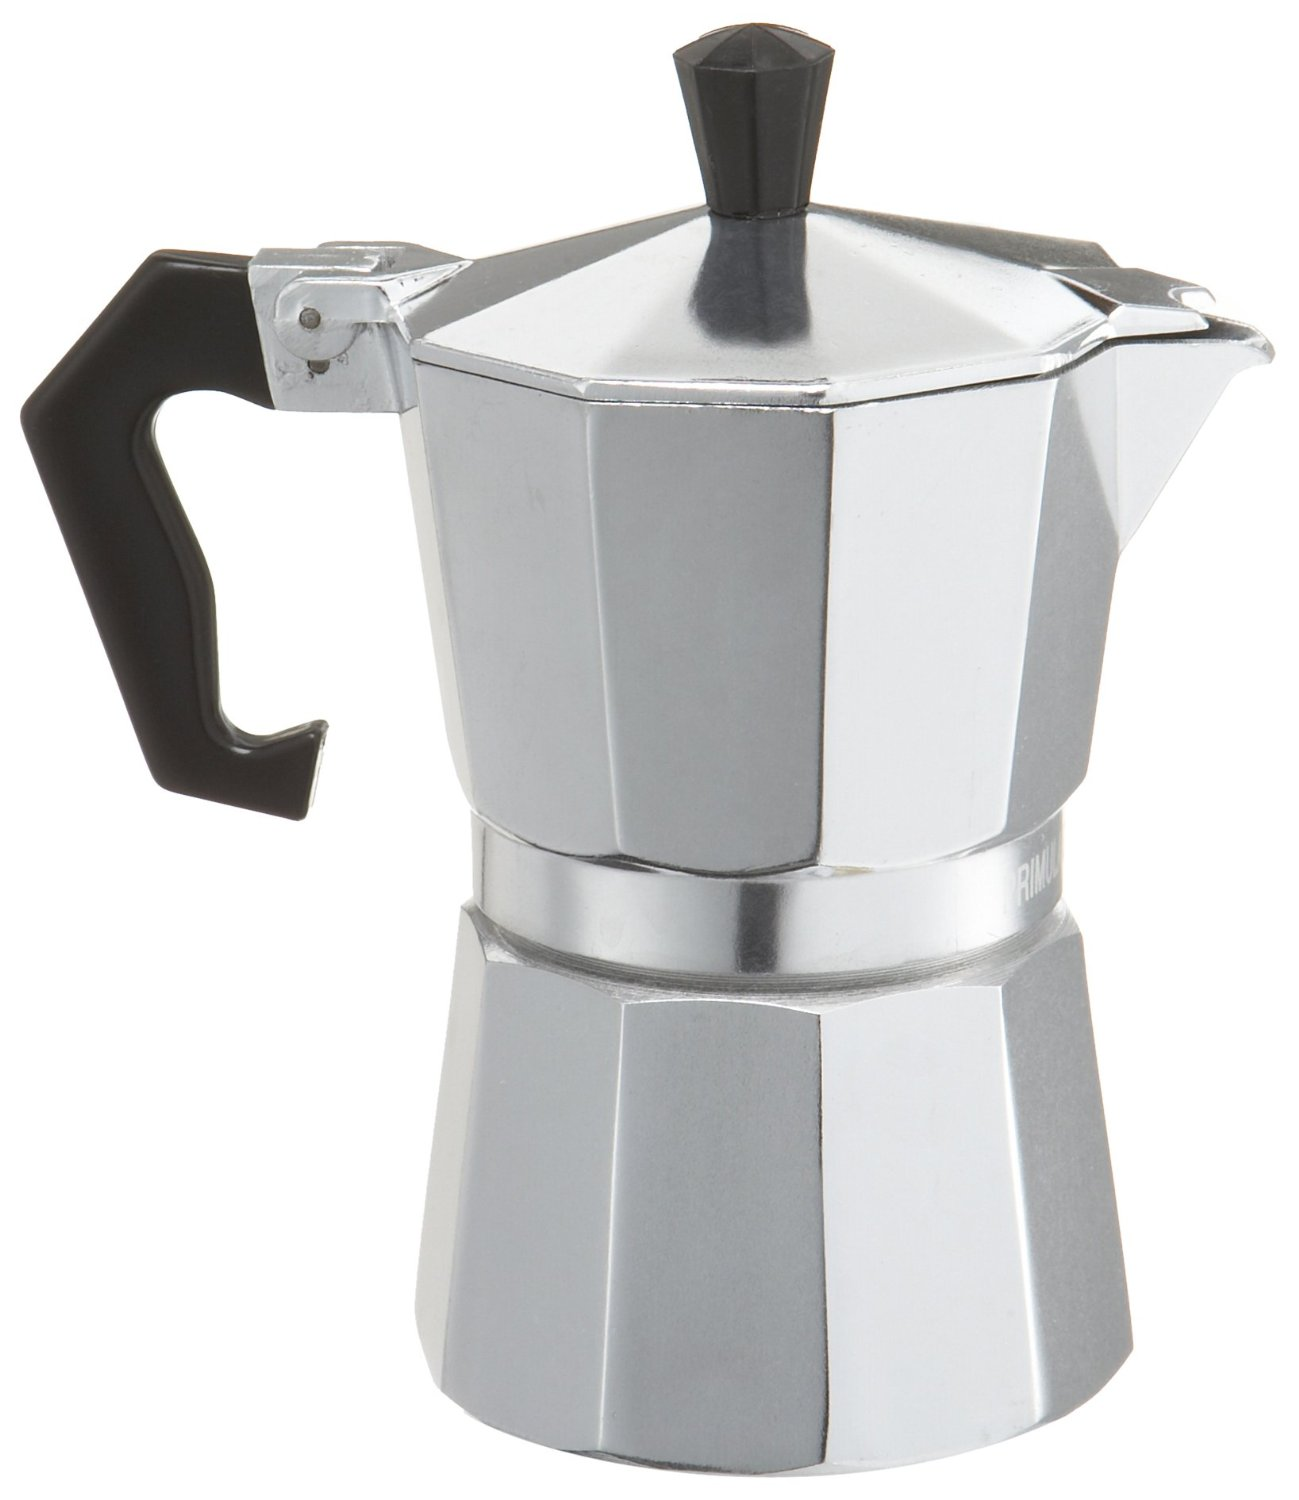 Coffee Pot For Coffee Maker : Primula Aluminum 3 Cup Stovetop Espresso Maker Latte Mocha Coffee Pot New eBay